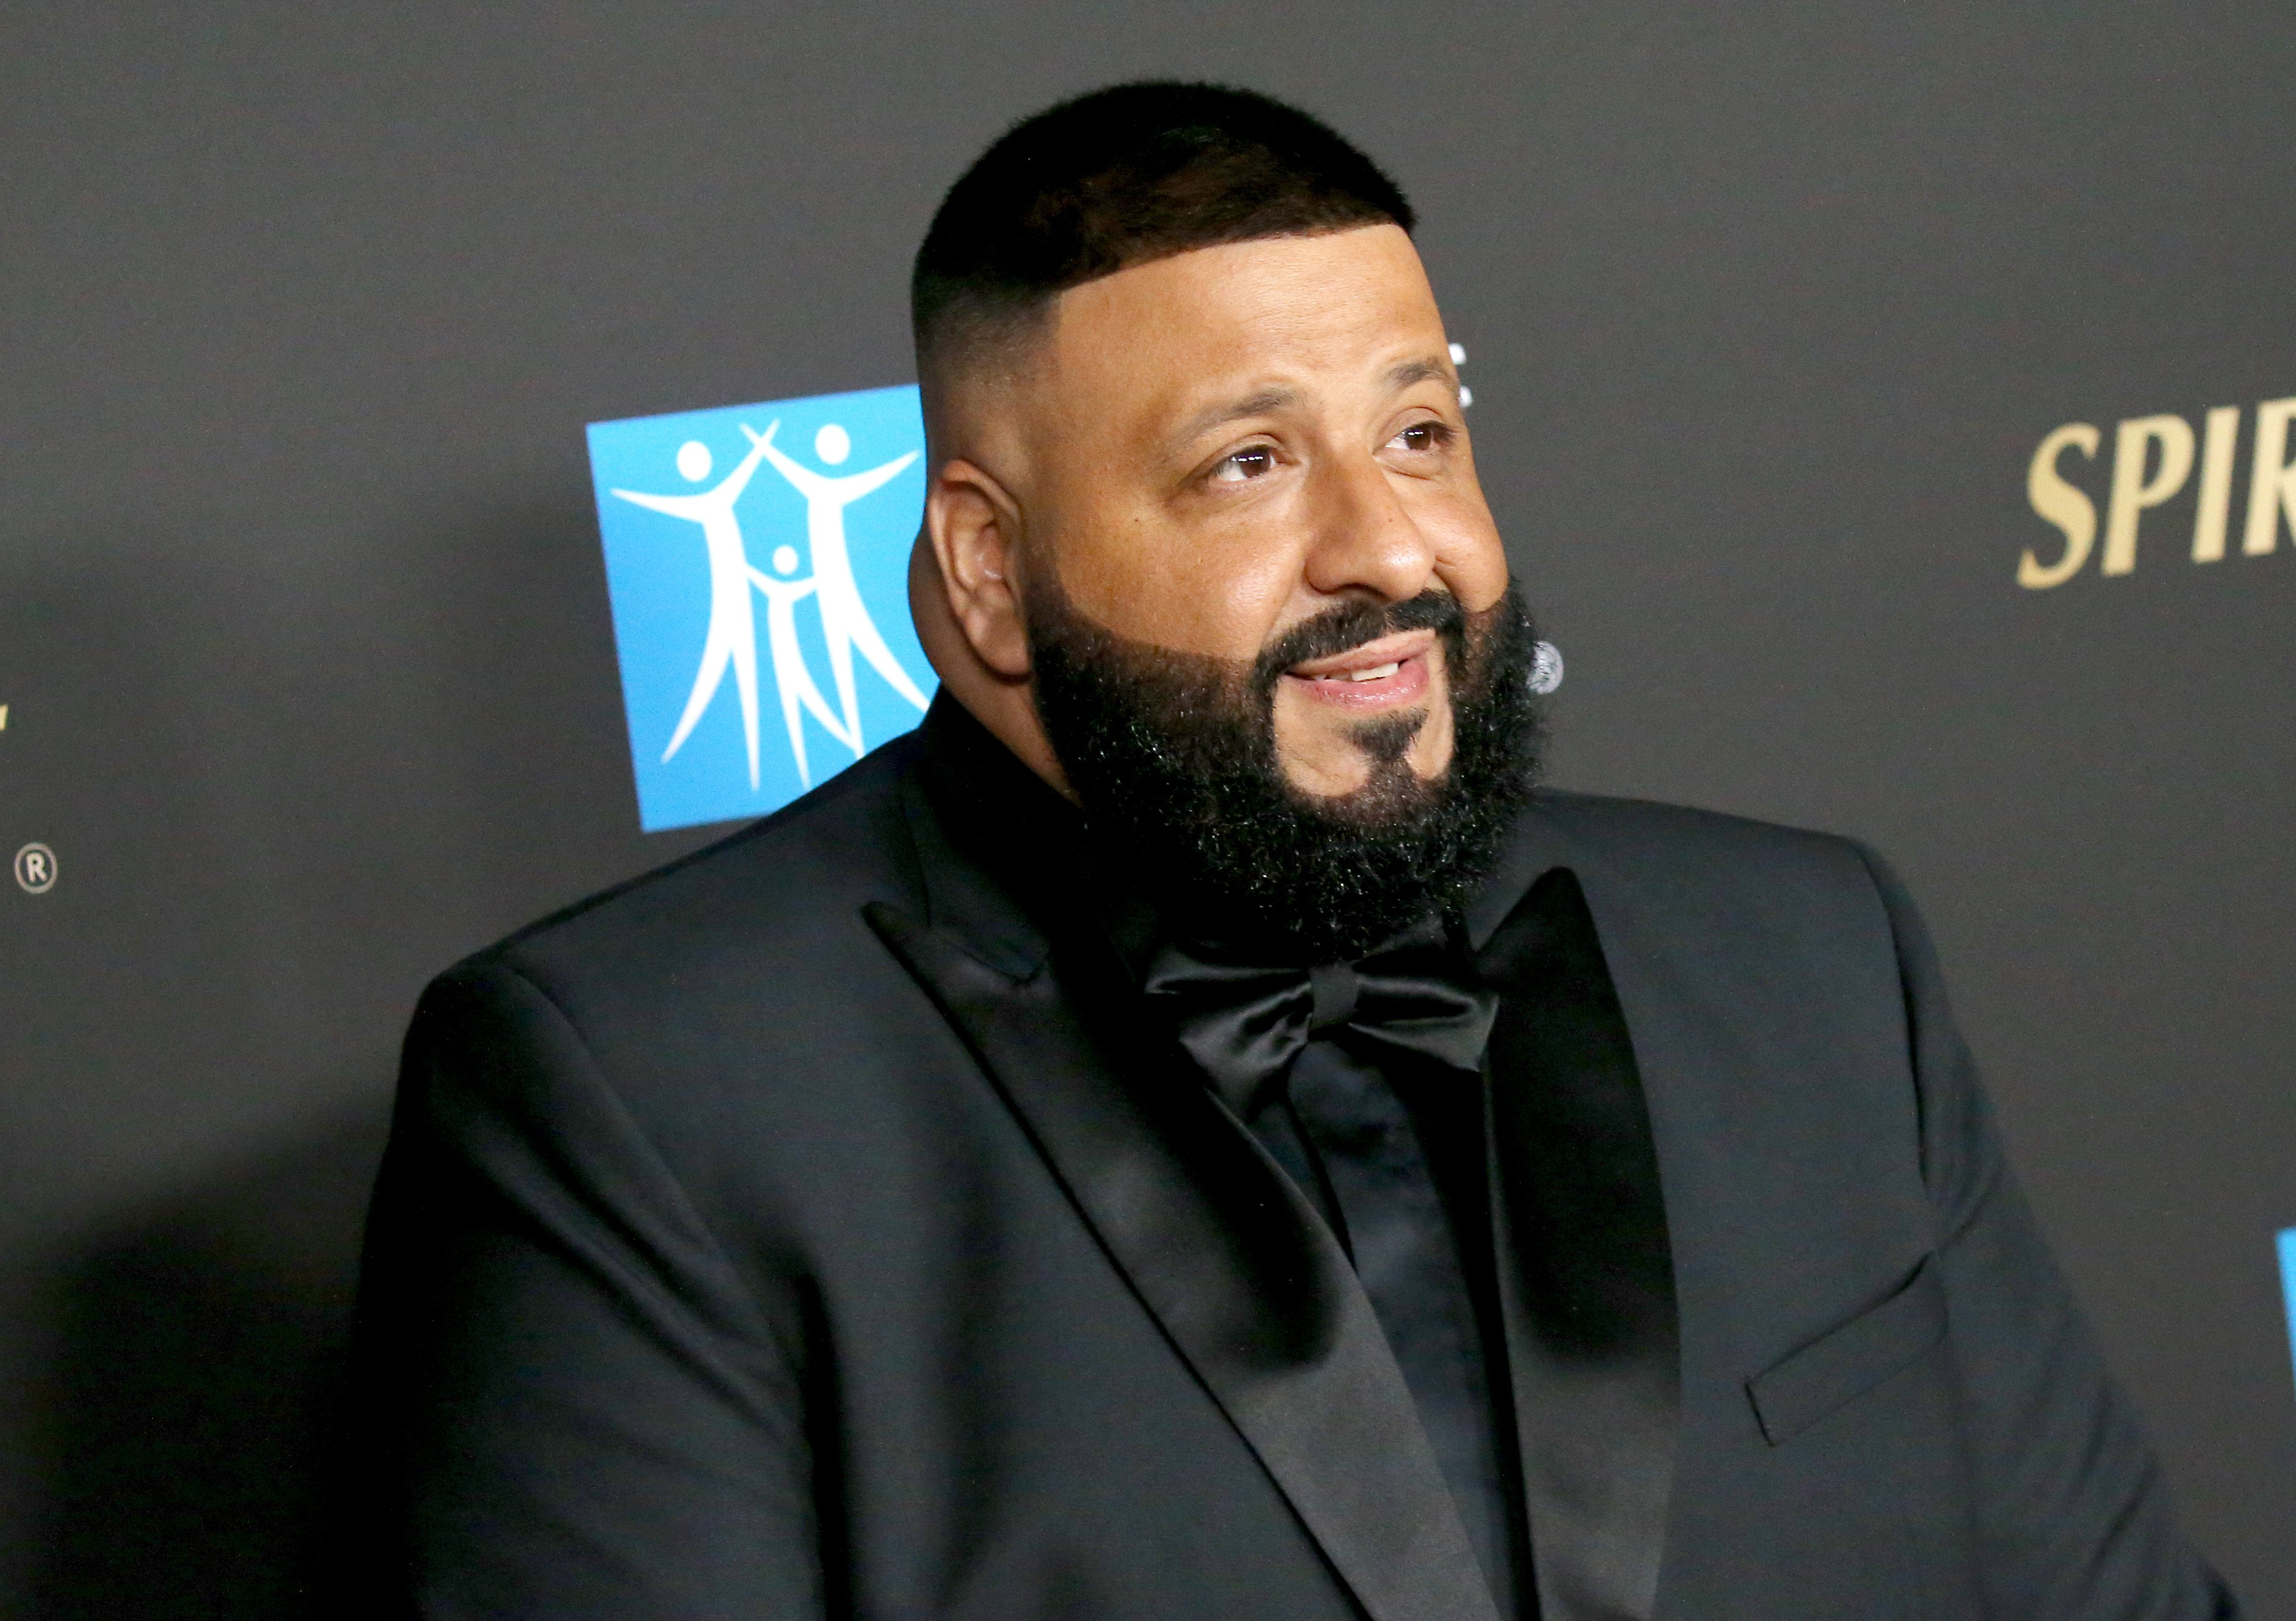 DJ Khaled at the City Of Hope's Spirit of Life 2019 Gala held at The Barker Hangar on October 10, 2019 in Santa Monica, California.| Source: Getty Images